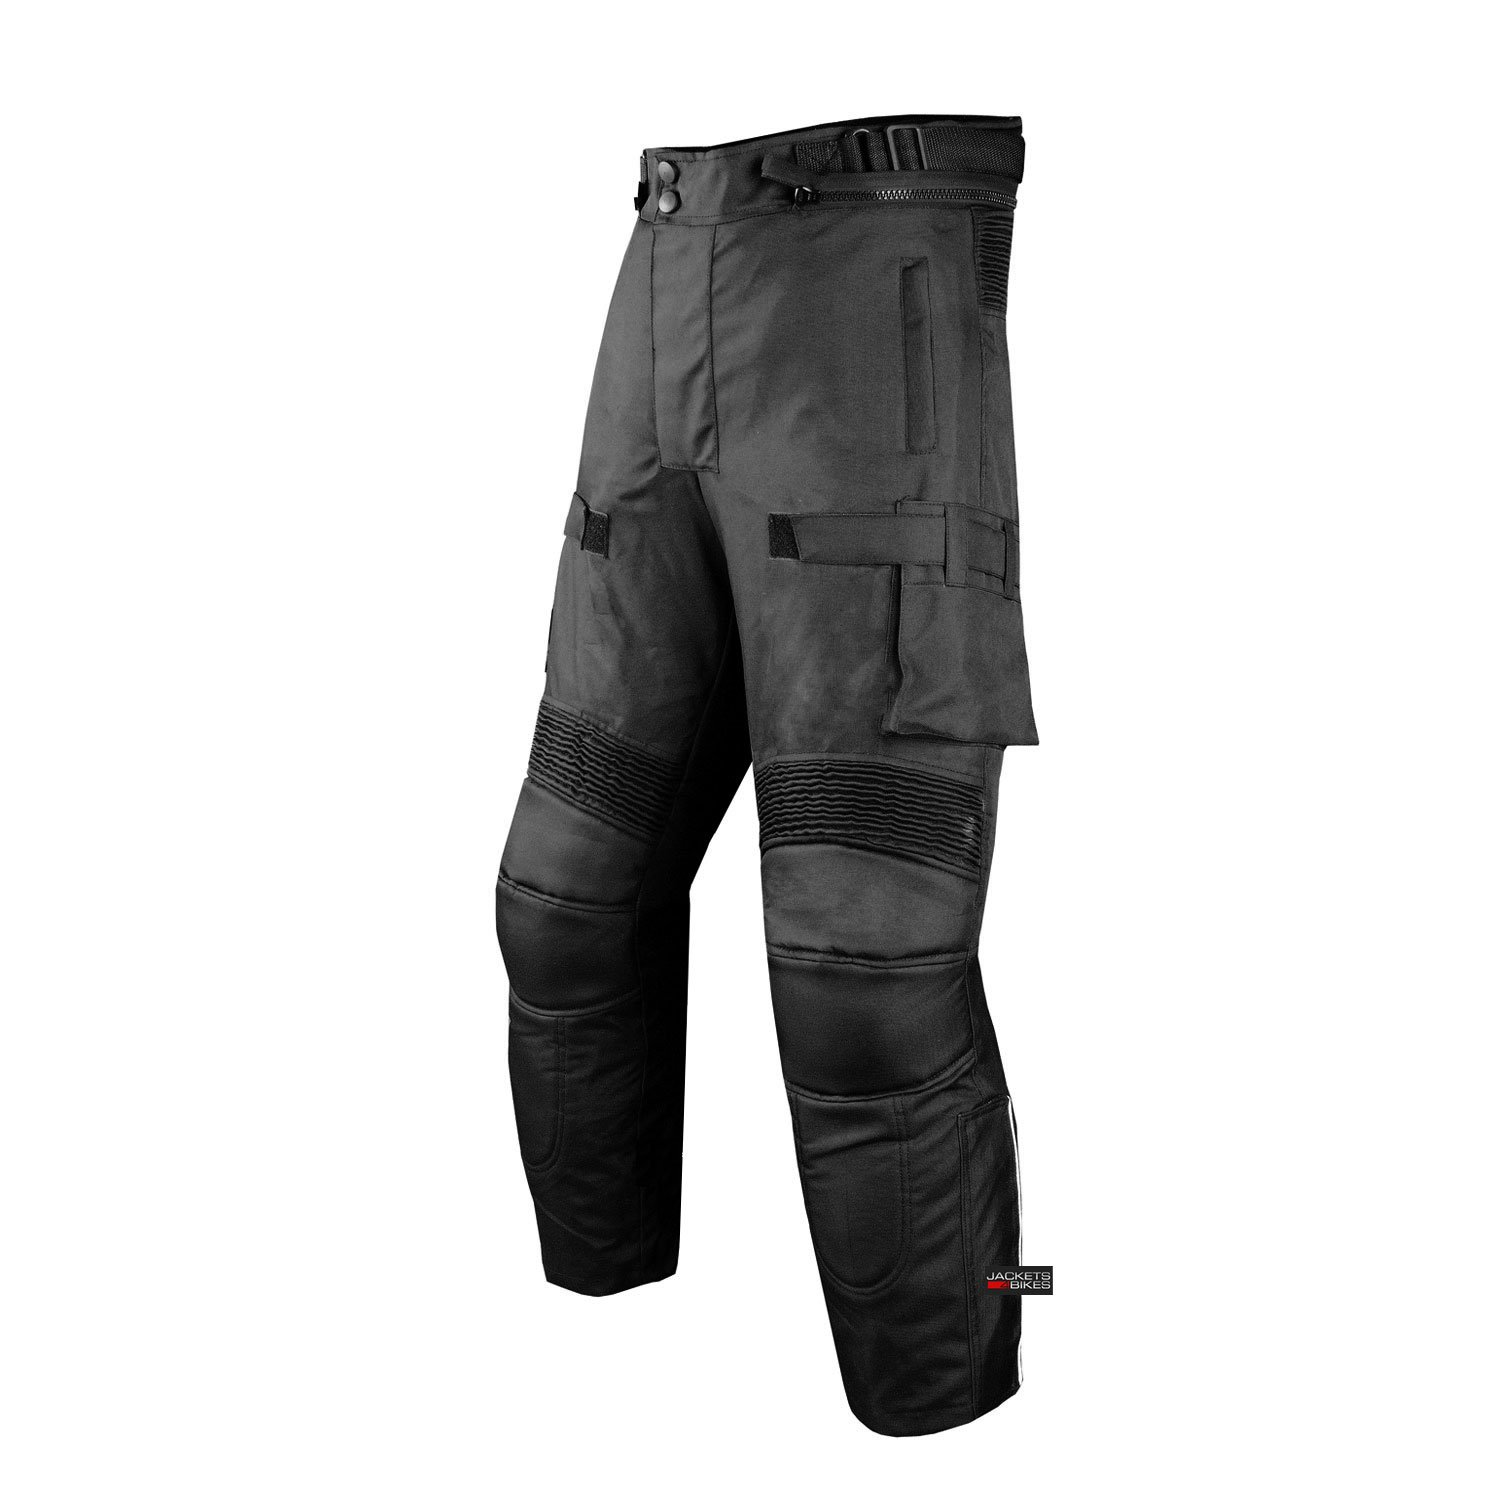 Motorcycle Textile Pants Waterproof Cruiser Touring Riding Armor Black 36w 30i by Jackets 4 Bikes (Image #2)